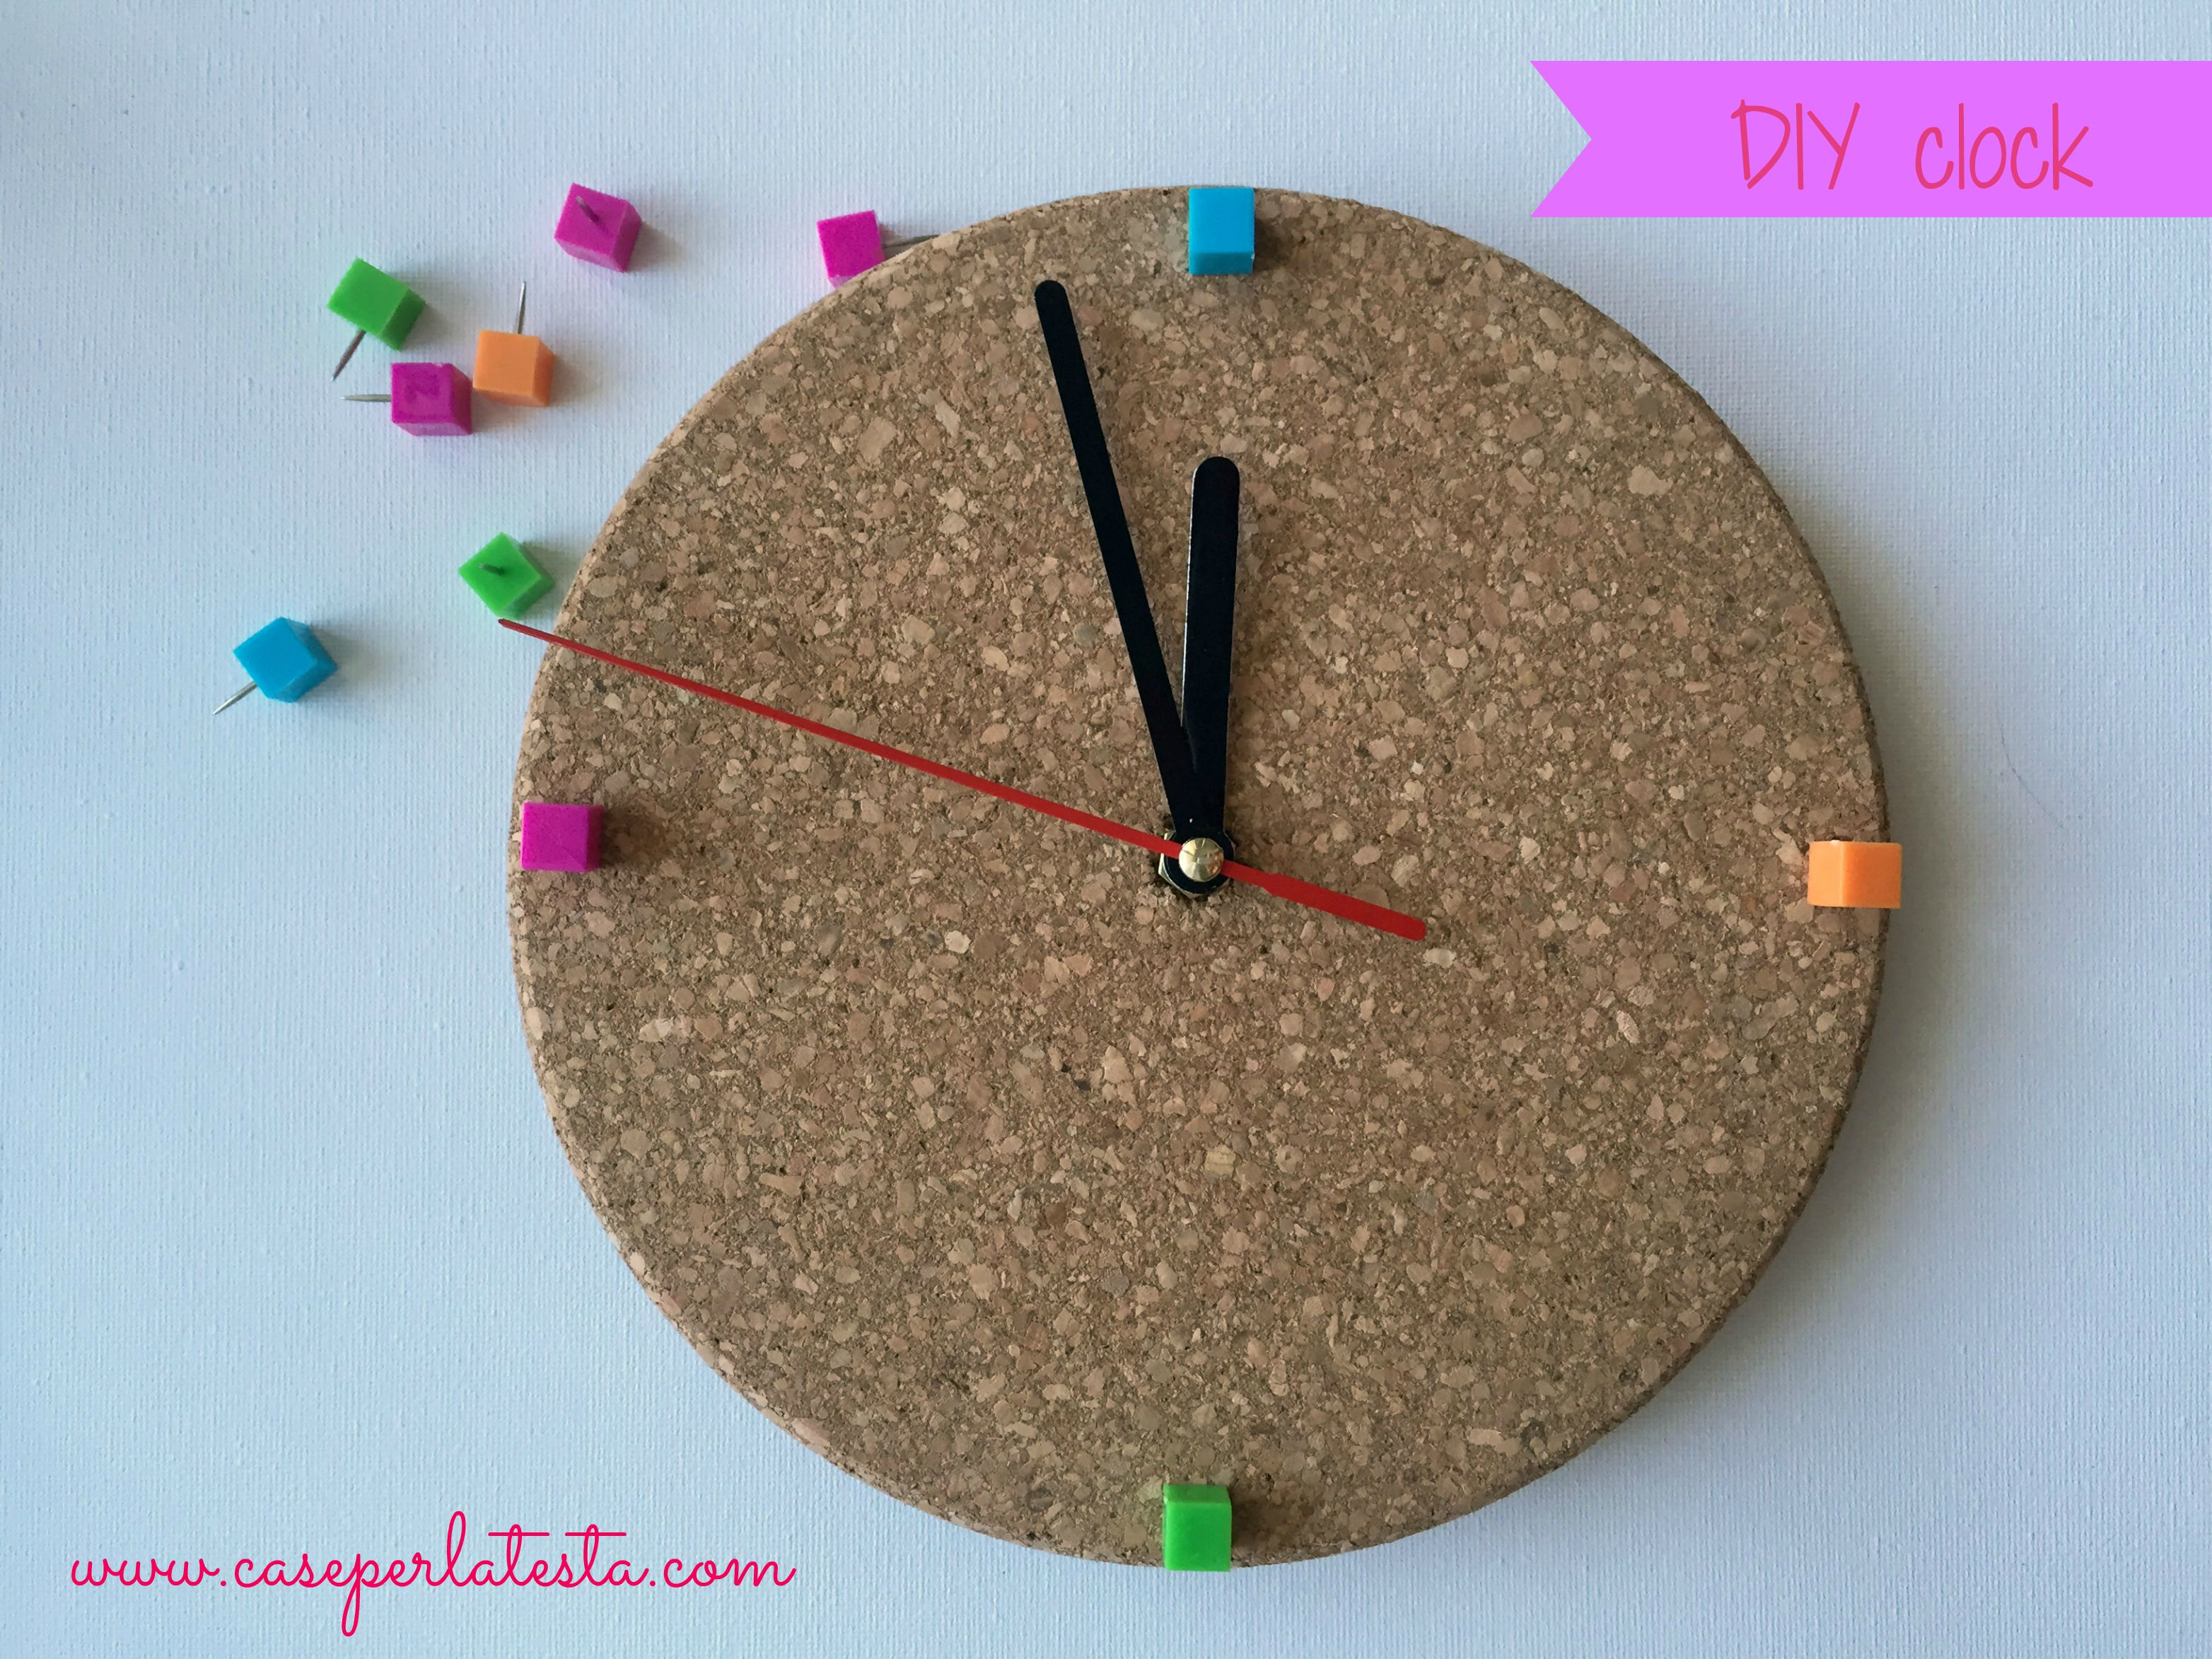 DIY_clock_step_4_1